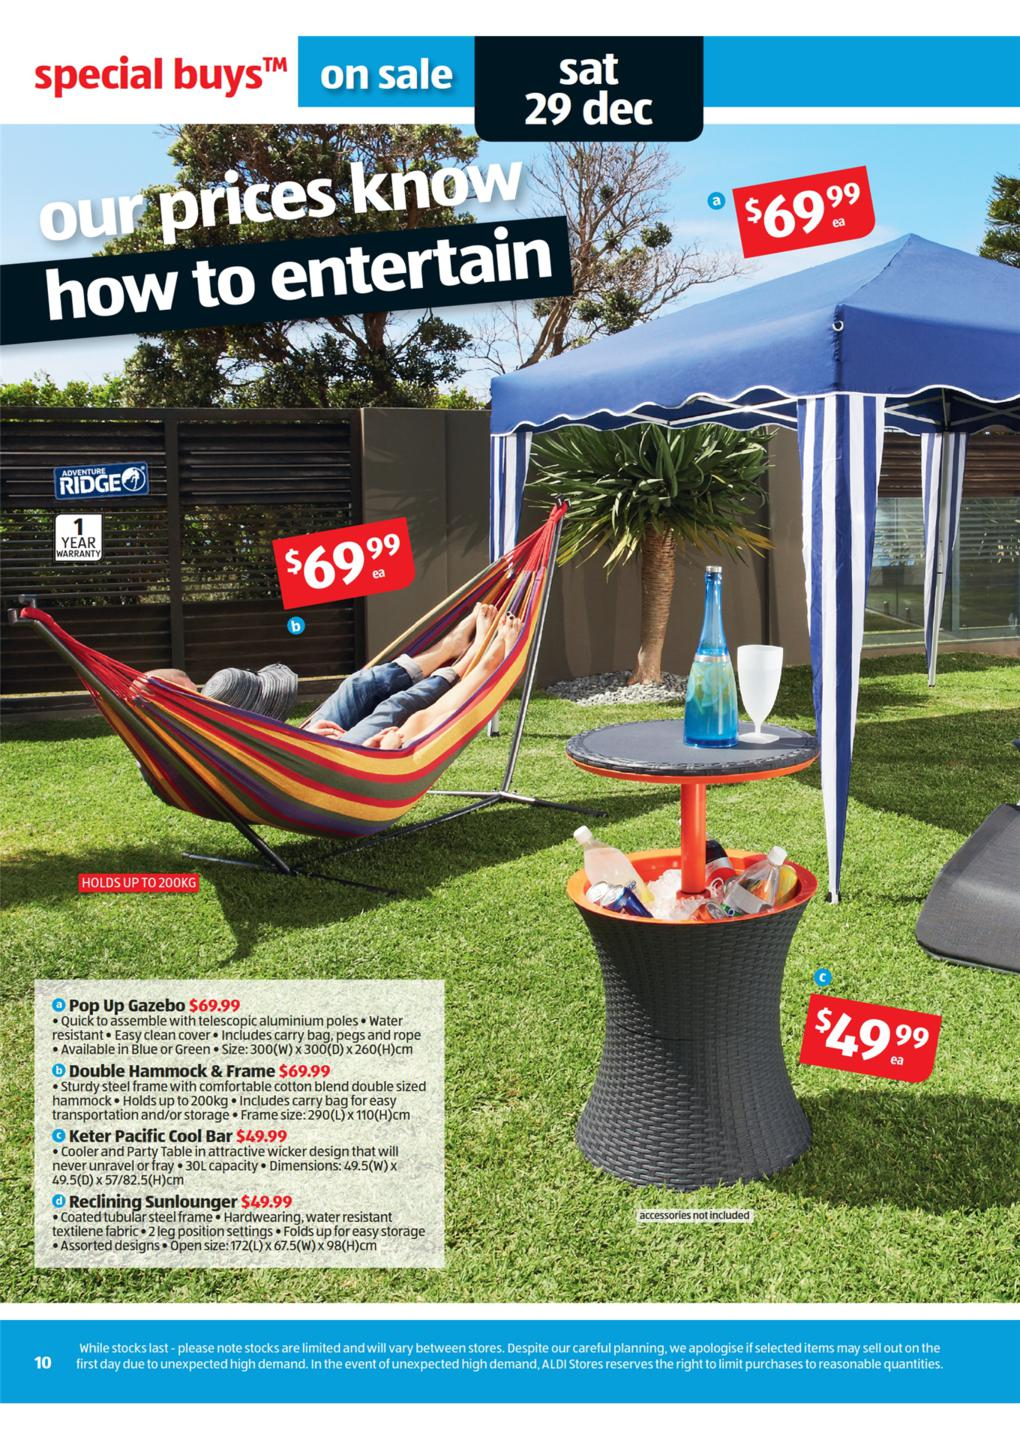 aldi catalogue   special buys wk 52 keter pacific cool bar adventure ridge pop up aldi catalogue   special buys wk 52 page 10  rh   discountstoresau